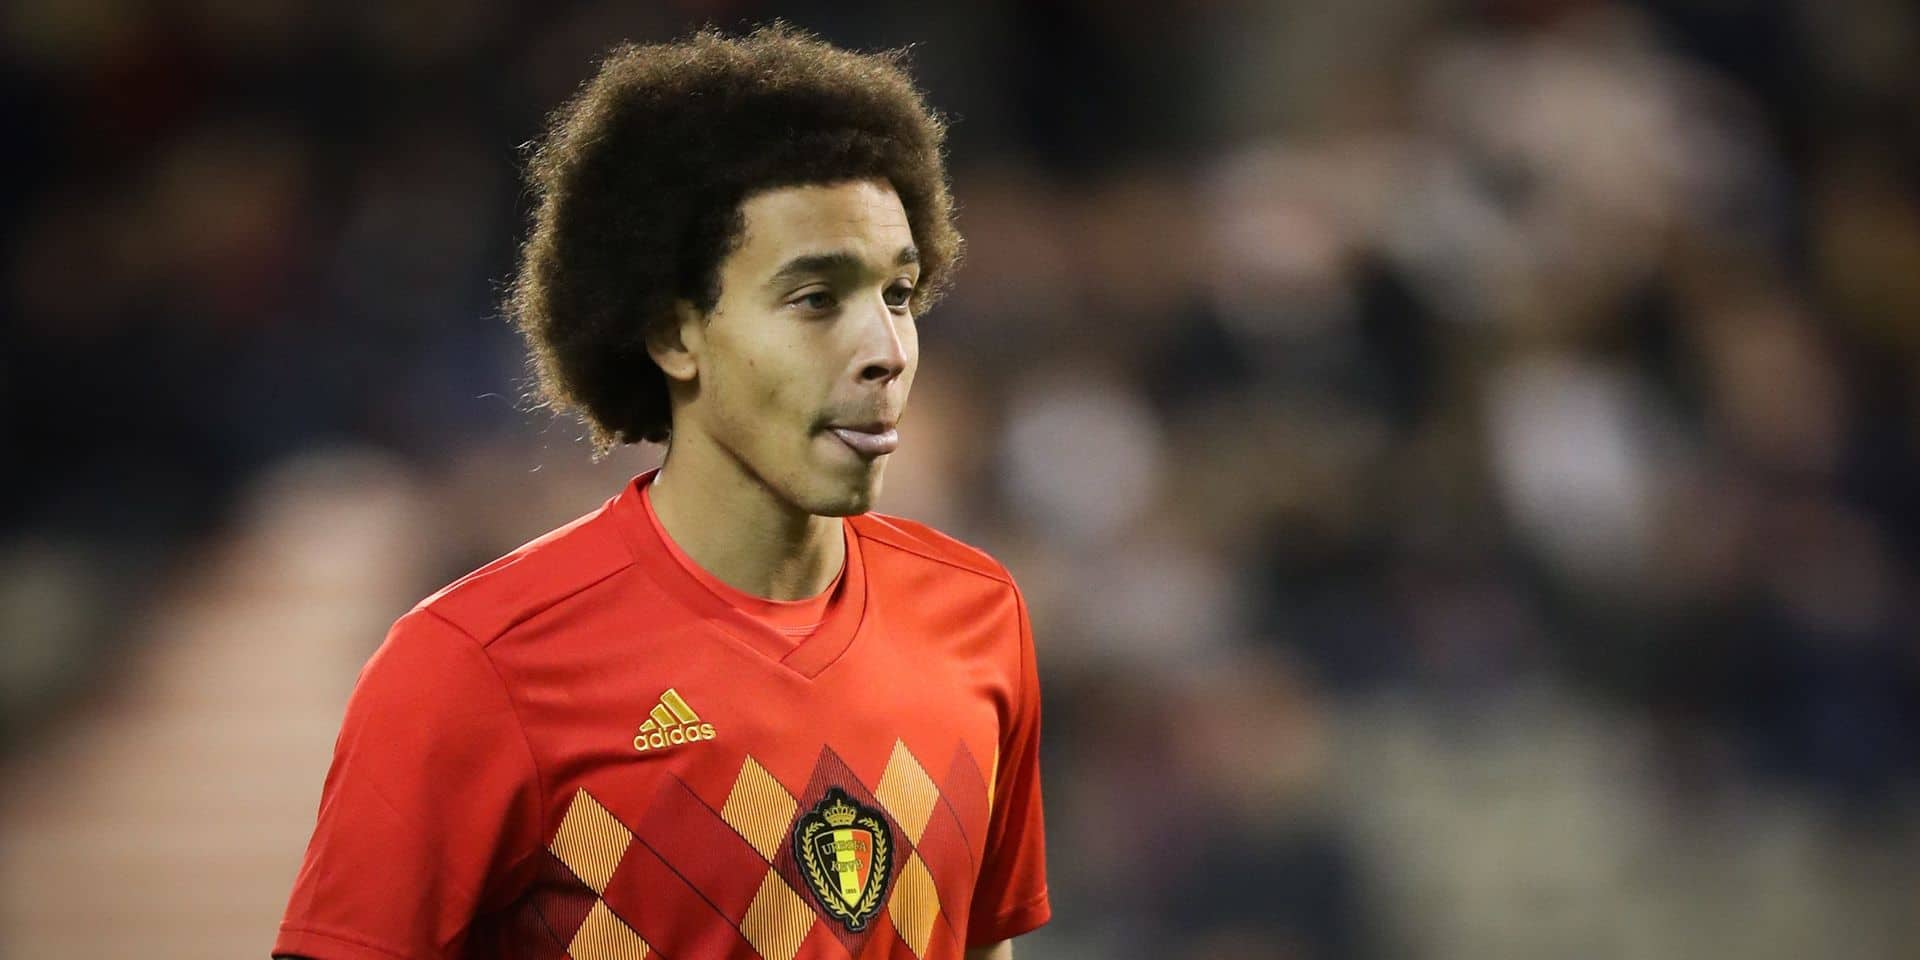 Belgium's Axel Witsel pictured during a friendly soccer game between Belgian national team Red Devils and Mexico, Saturday 11 November 2017, in Brugge. BELGA PHOTO VIRGINIE LEFOUR